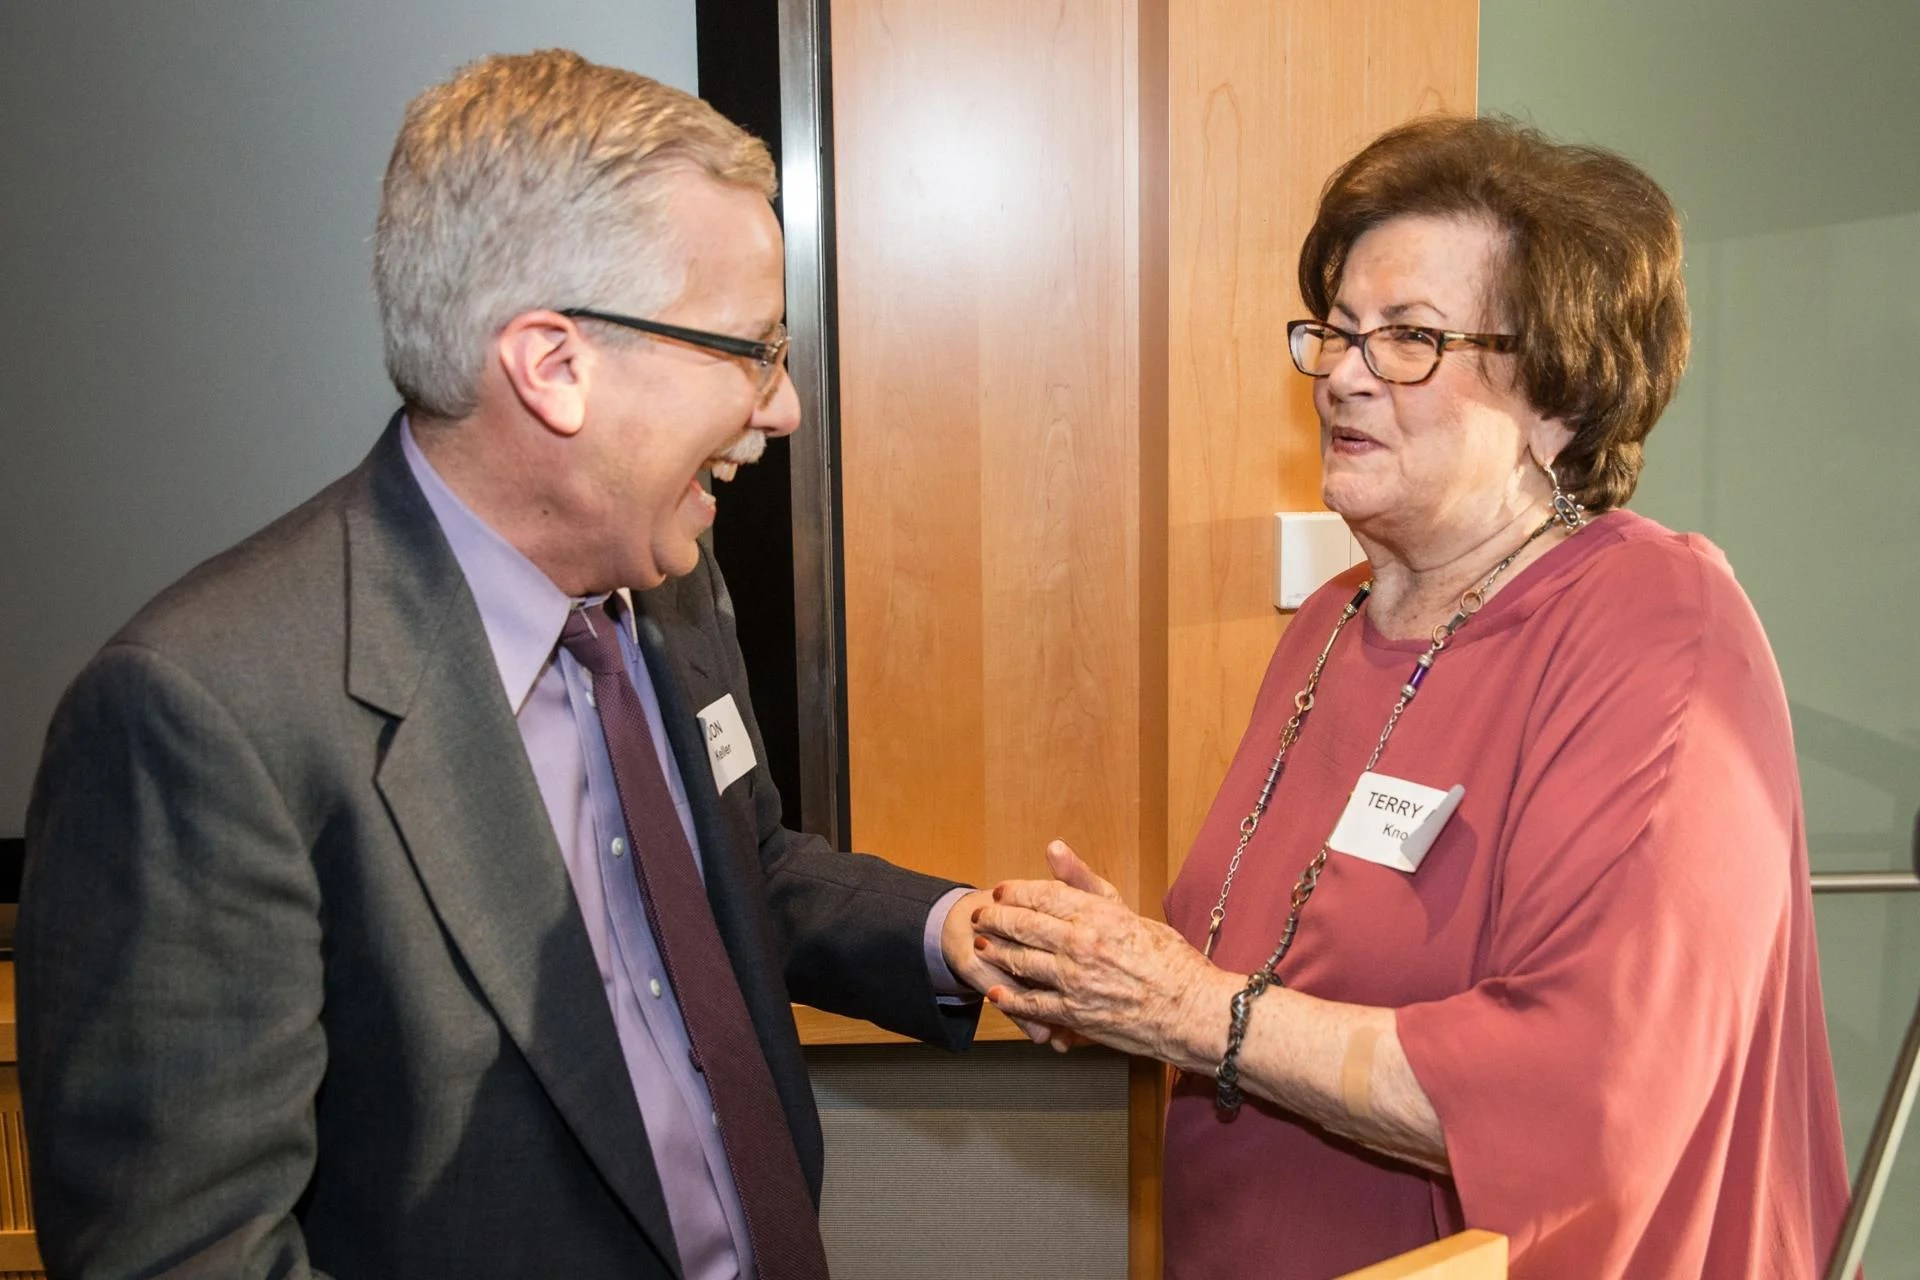 06/14/2017 BOSTON, MA Jon Keller (cq) (left) and Terry Ann Knopf (cq) attend a cocktail party at WGBH studios. (Aram Boghosian for The Boston Globe)